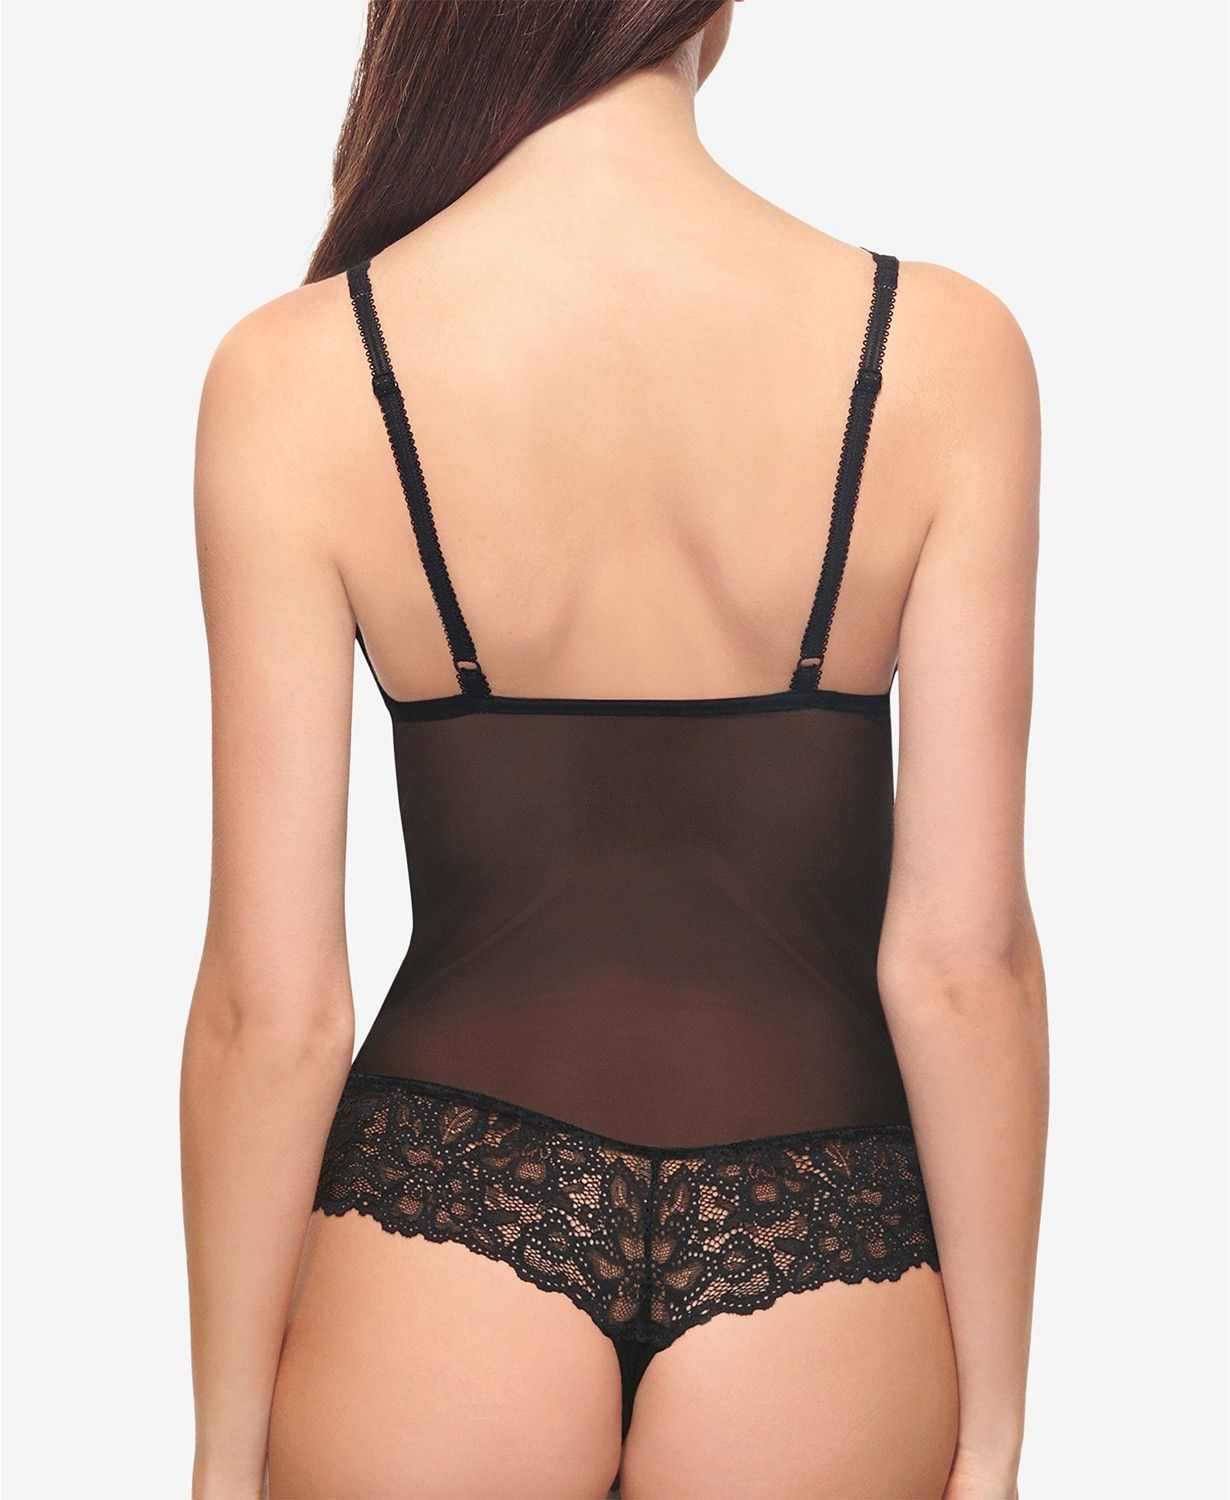 521229f2bc Charming Mesh and Lace Bodysuit 936232 - Bras، Panties   Lingerie - Women -  Macy s